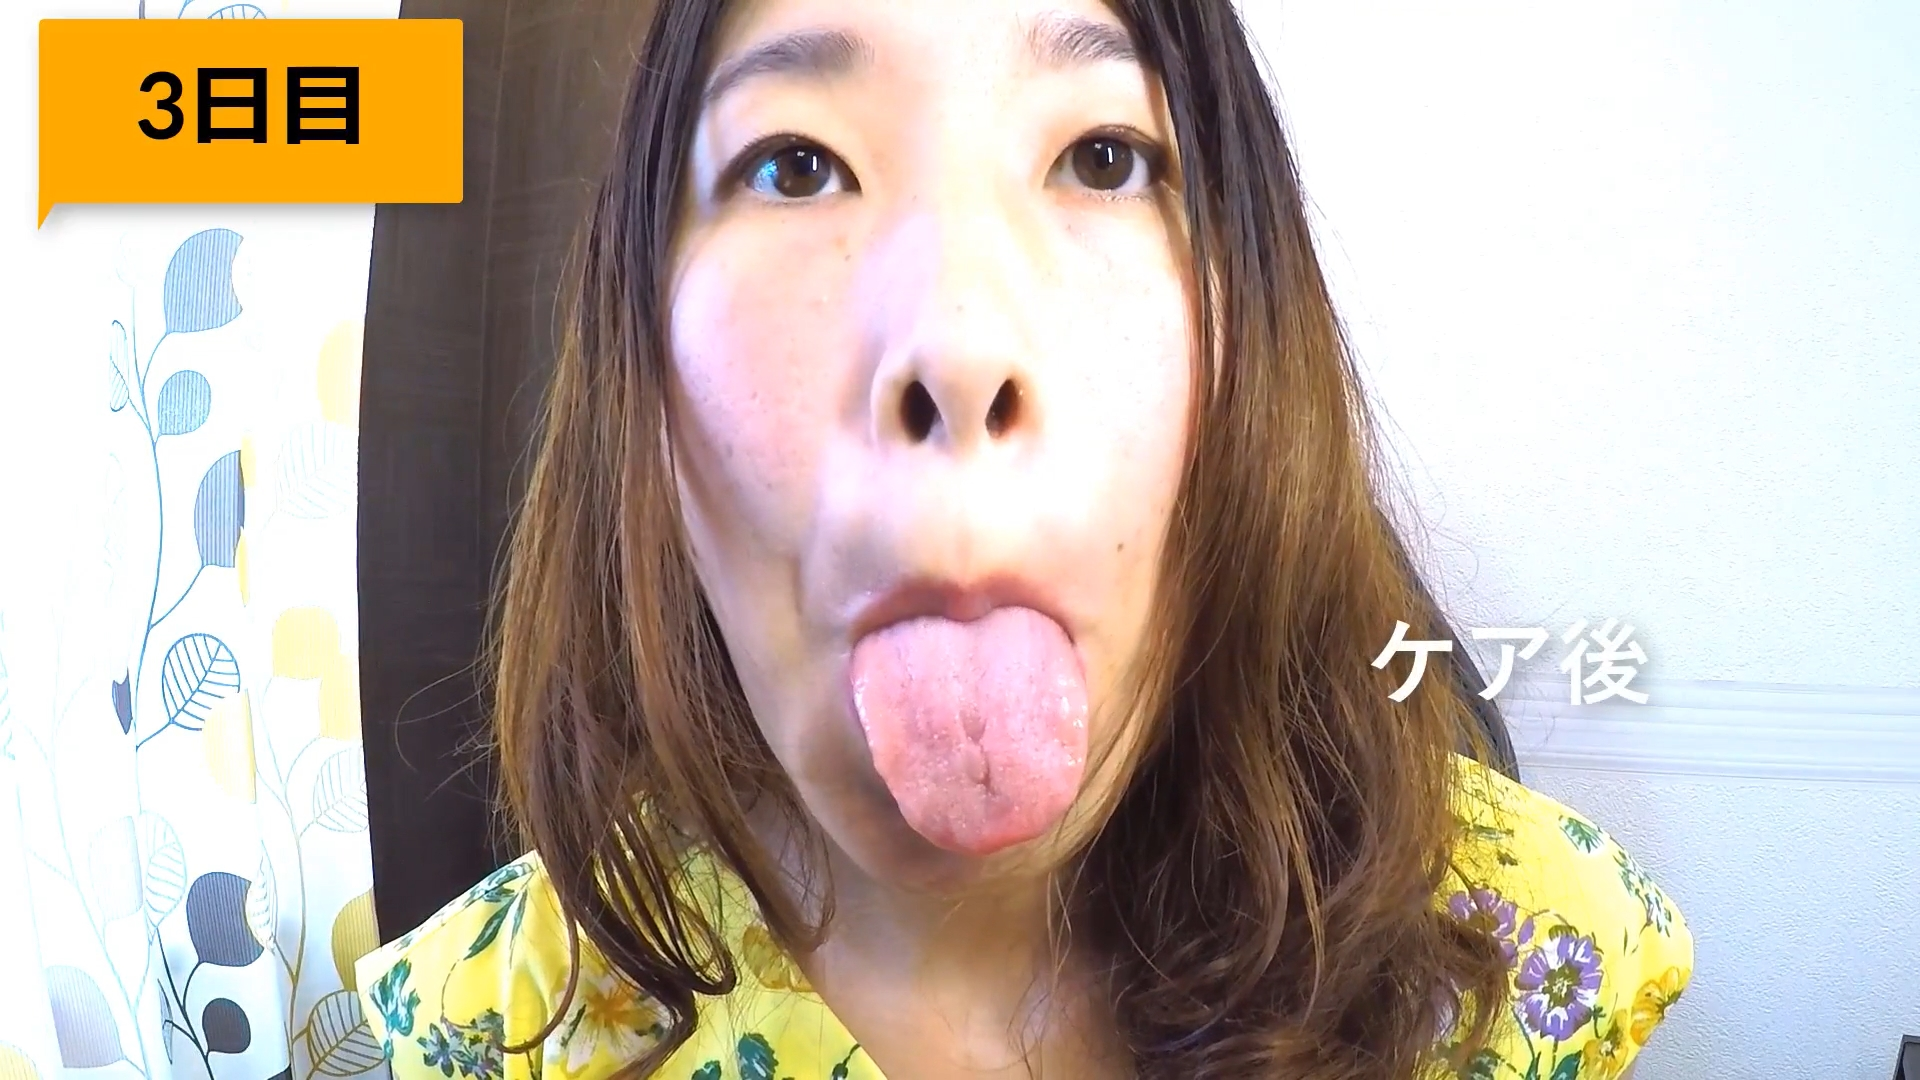 YouTuberの割れ汚舌 (11)